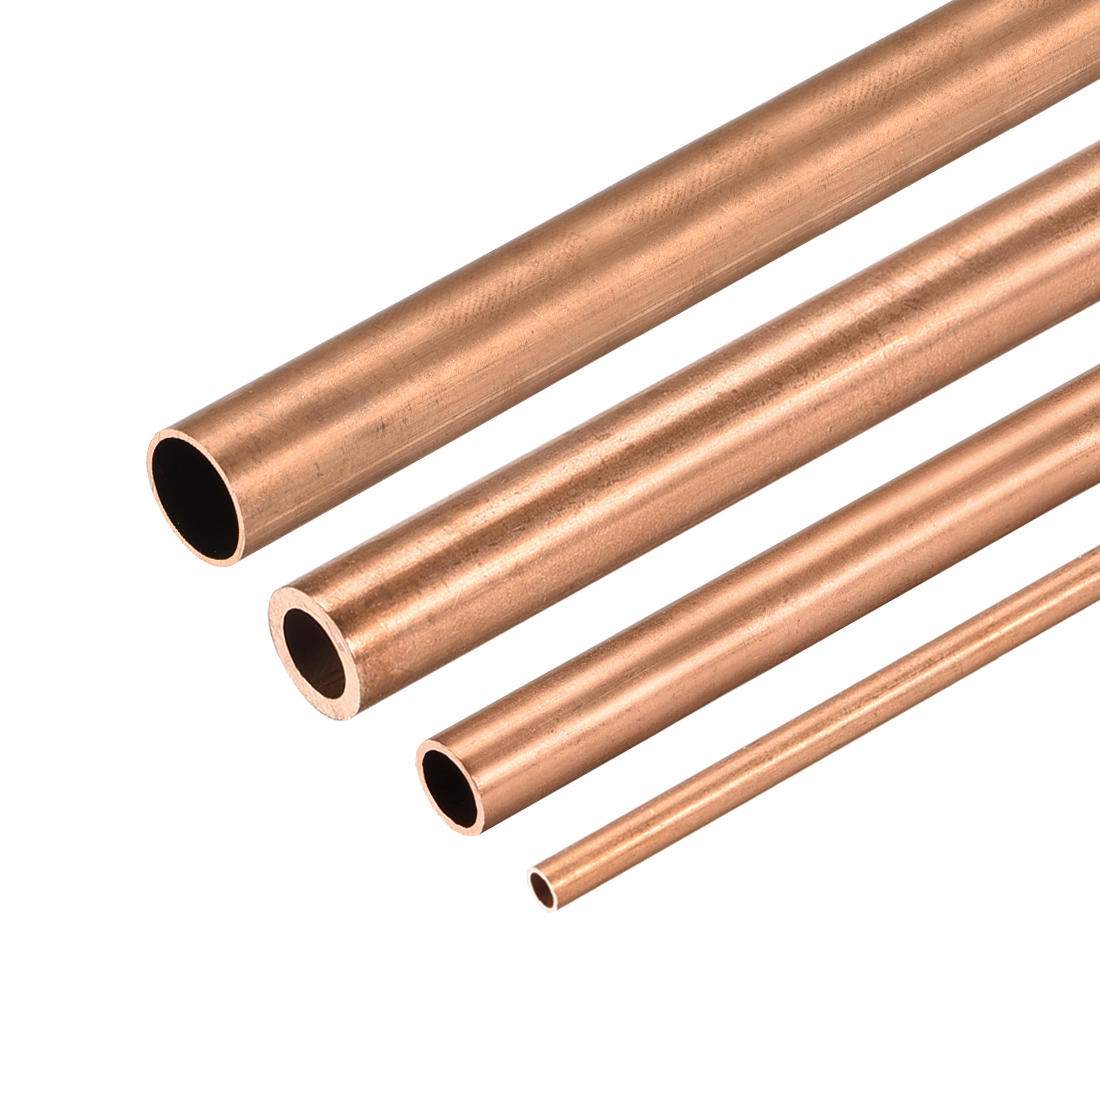 Used For Cooling Water Heating Tool Generator Copper Tube-cable Switch Equipment-DIY 300mm Long Hollow Straight Tube BTCS-X 1PCS Copper Round Tube 8mm-30mm Outer Diameter 100mm 200mm